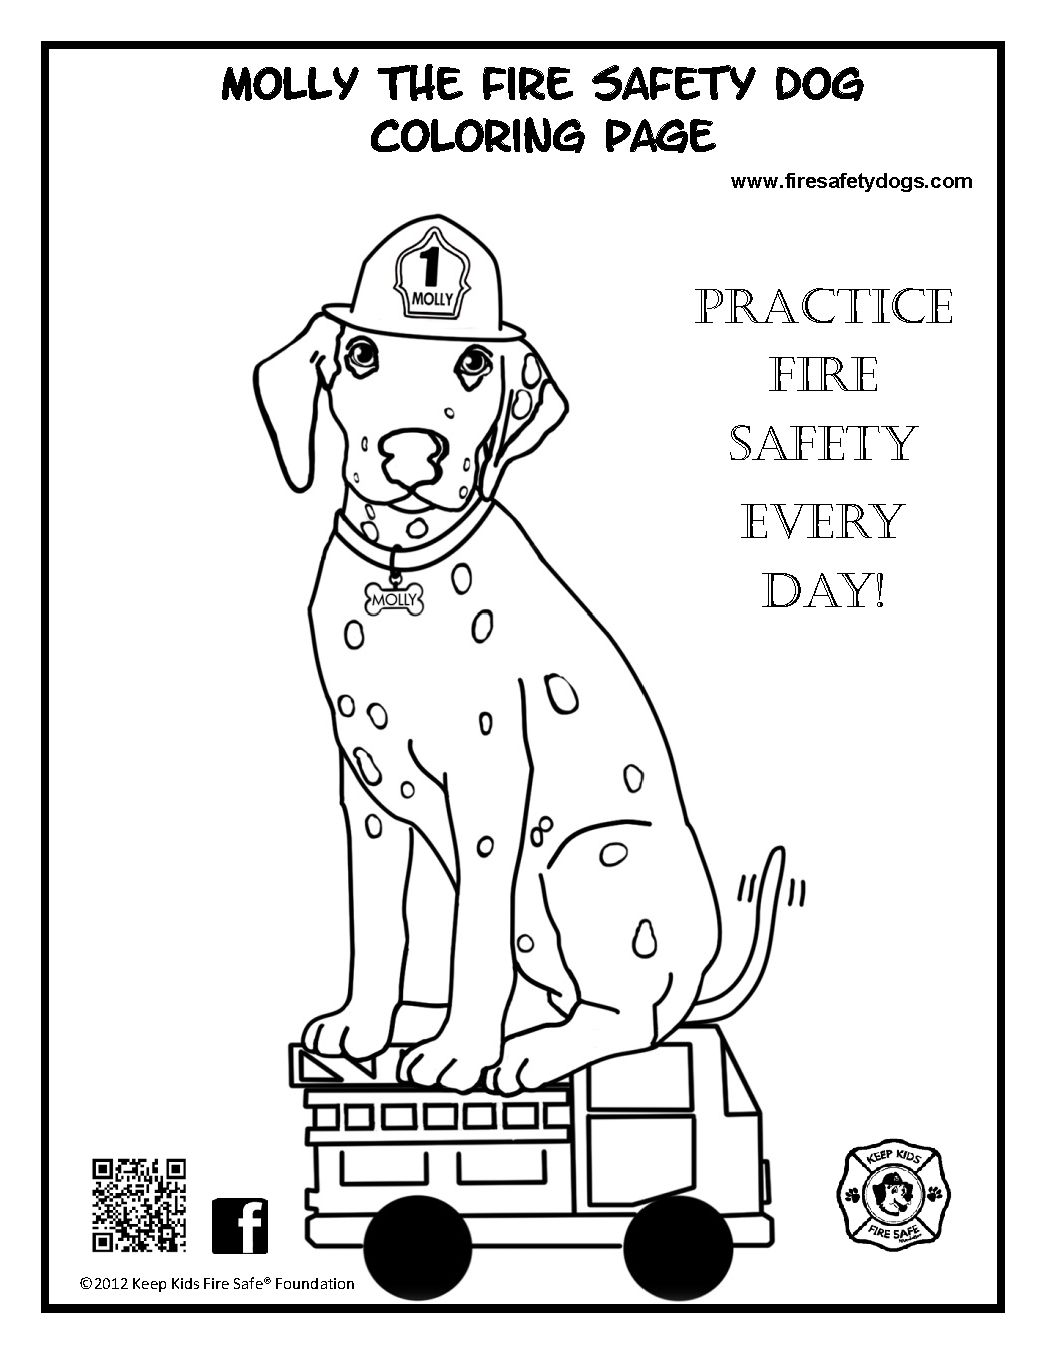 childrens fire safety coloring pages - photo#16